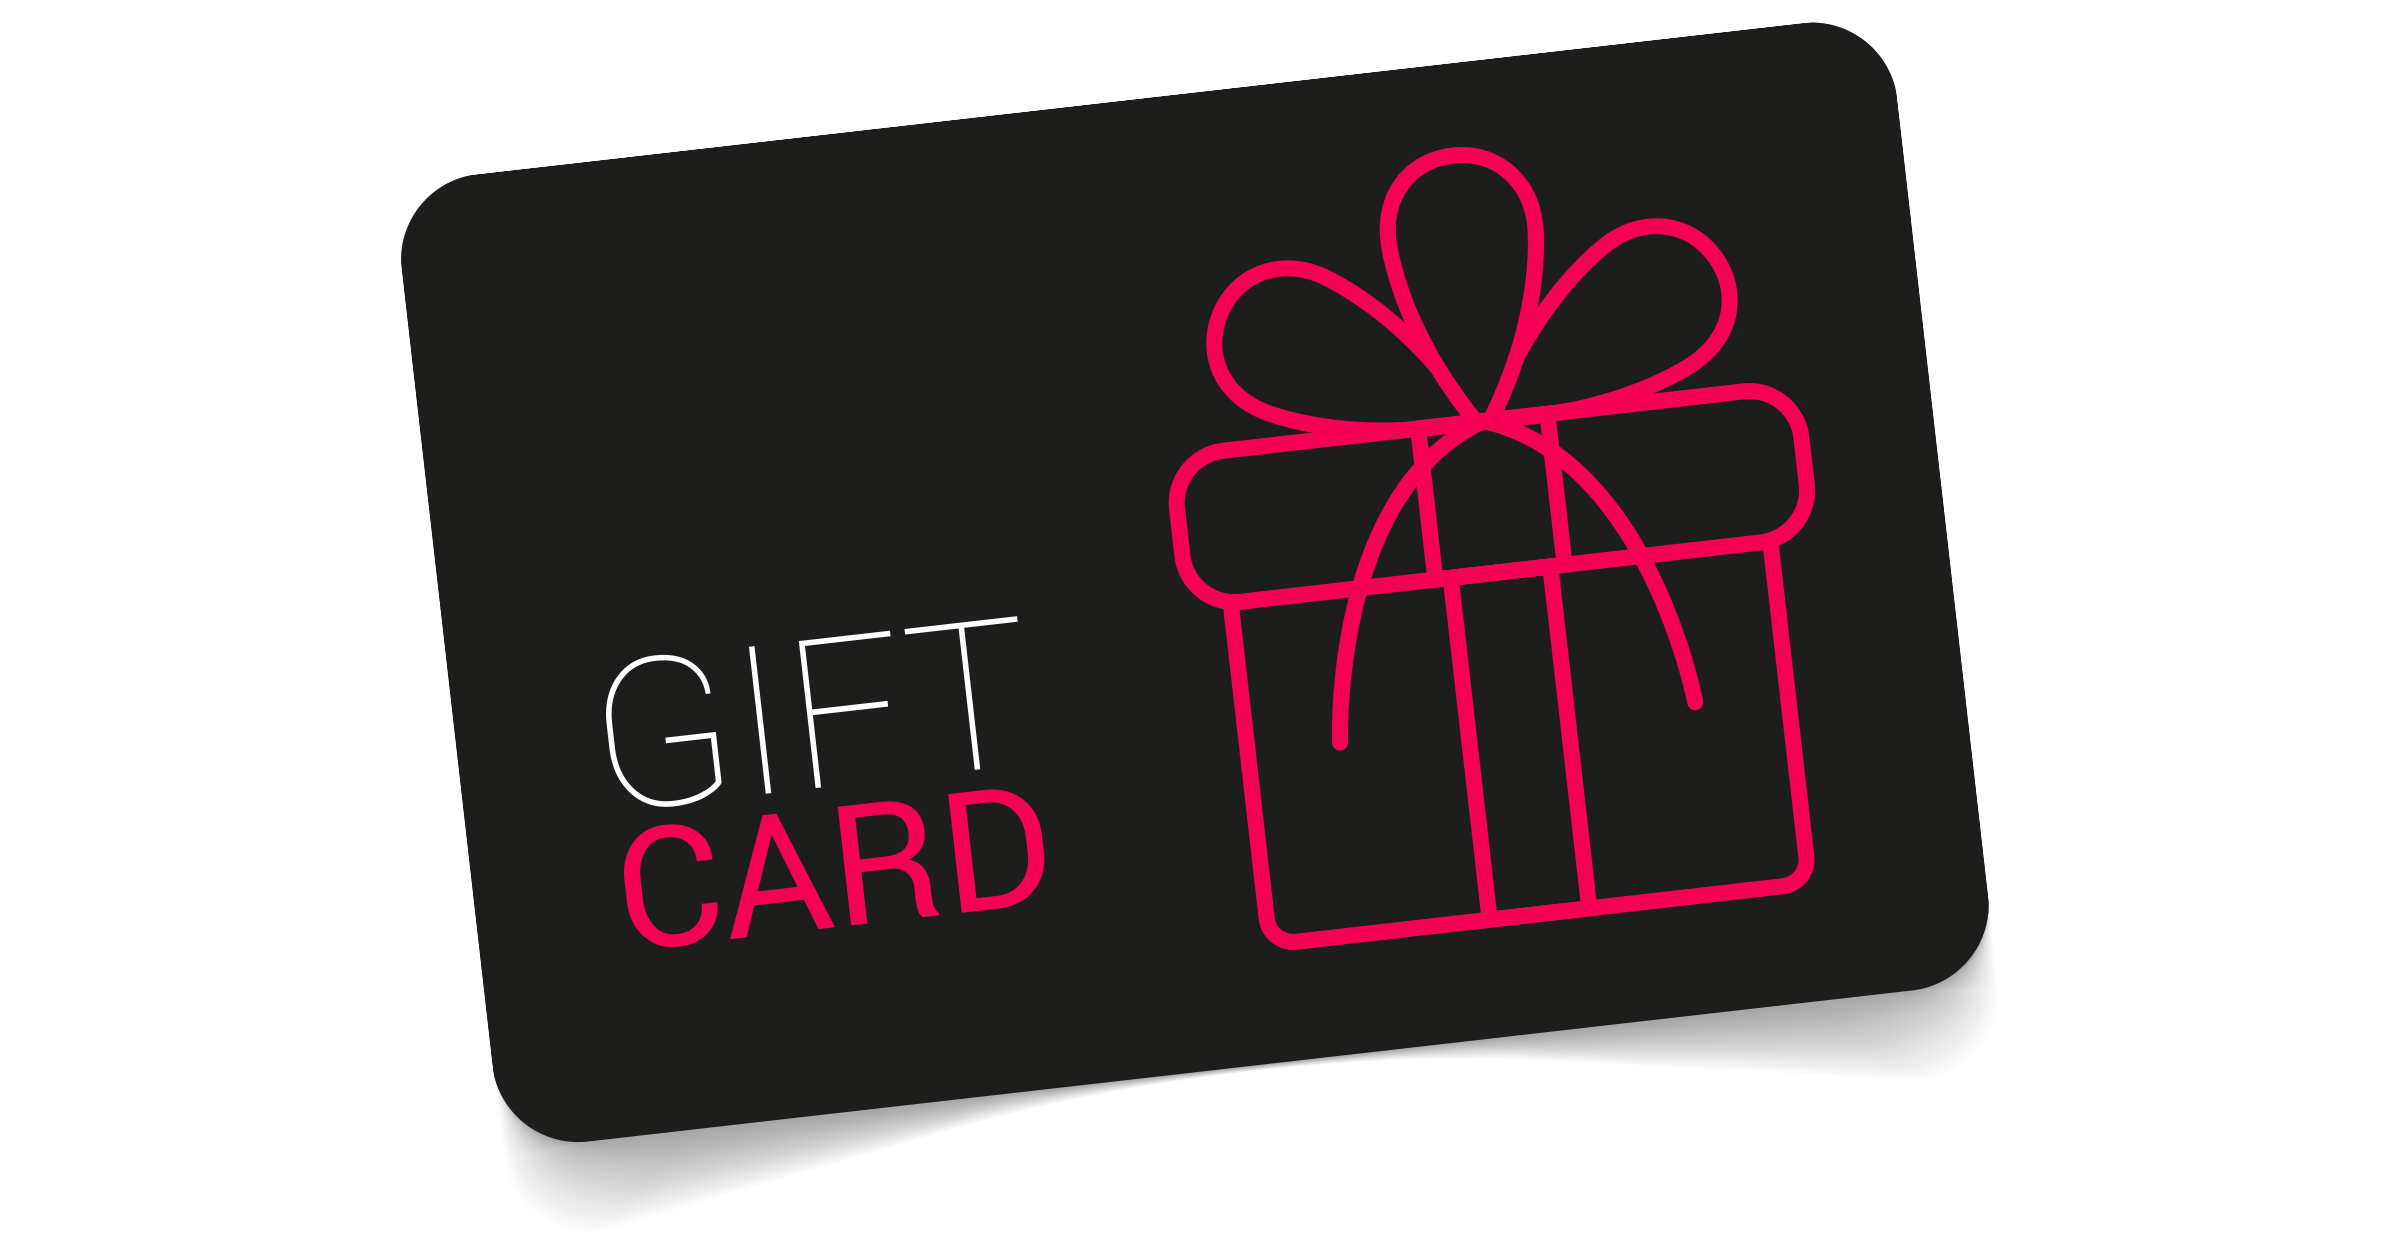 How to configure Quickbooks Online for Gift Cards